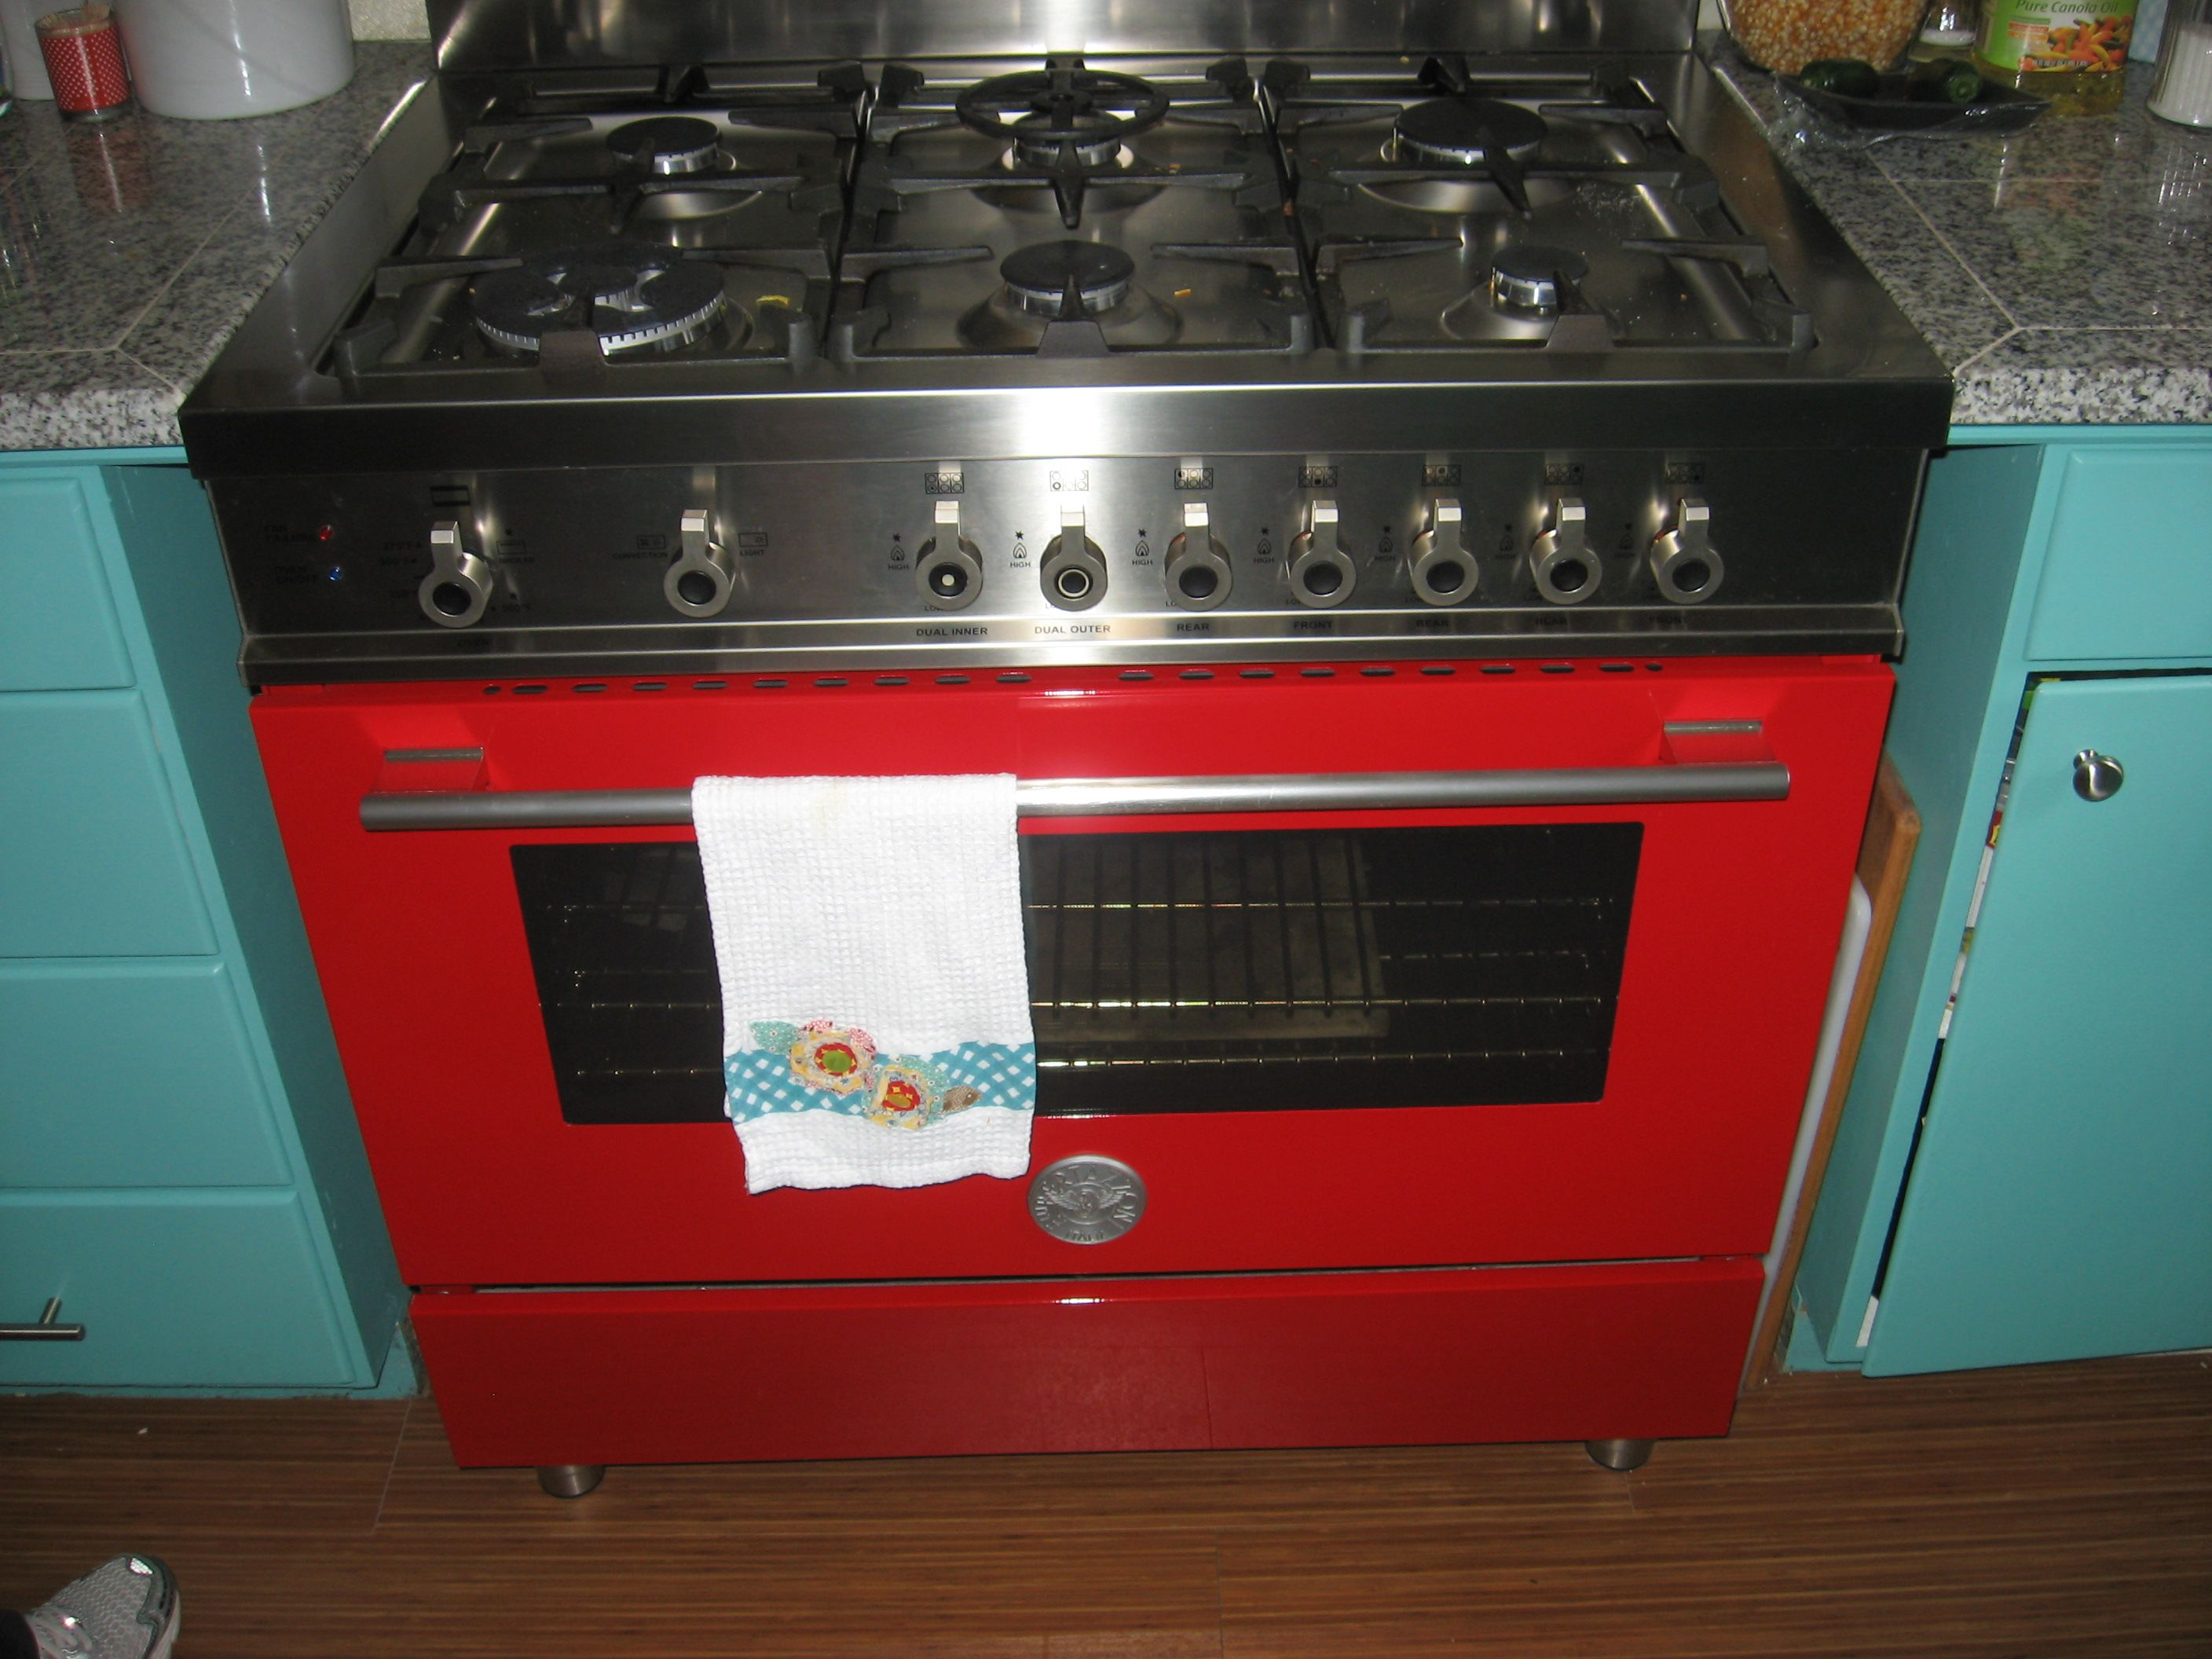 My Stove Bertie A Ferrari Red Bertazzoni Italian 6 Burner Gas Range With Convection Oven